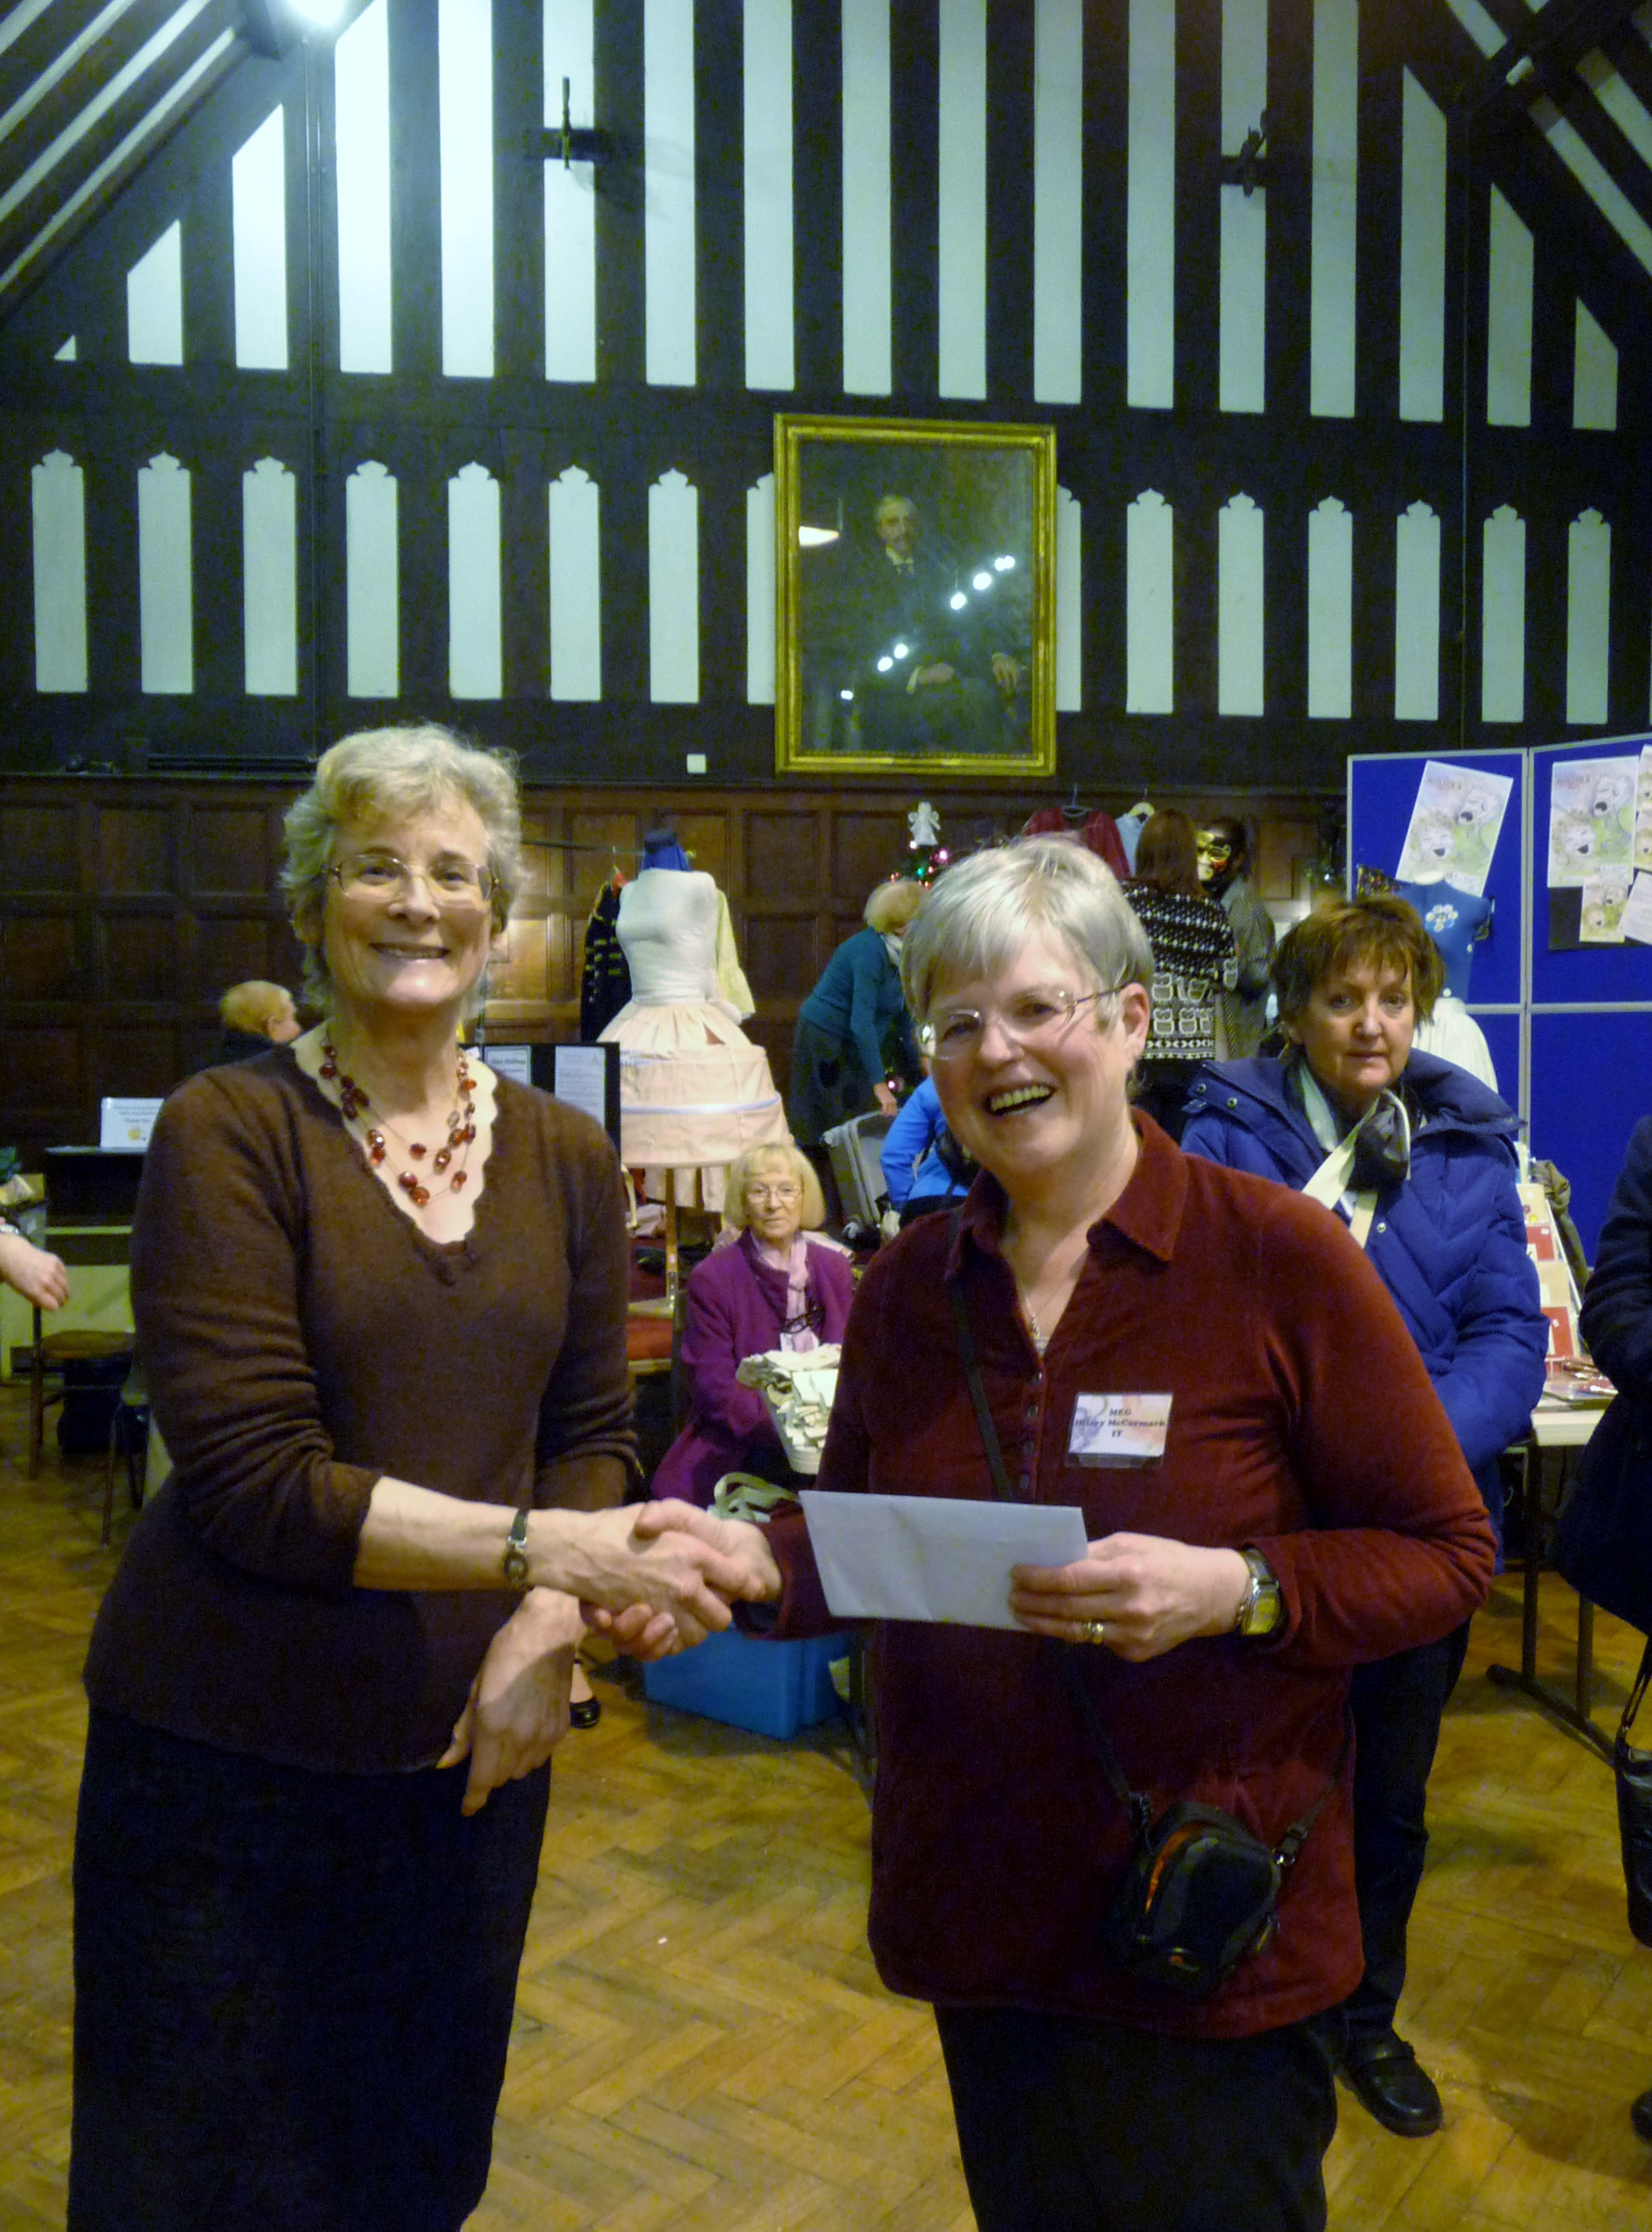 Hilary McCormack, winner of Traditional Embroidery competition 2014, receiving her prize from MEG Chair Kim Parkman at MEG Christmas party 2014